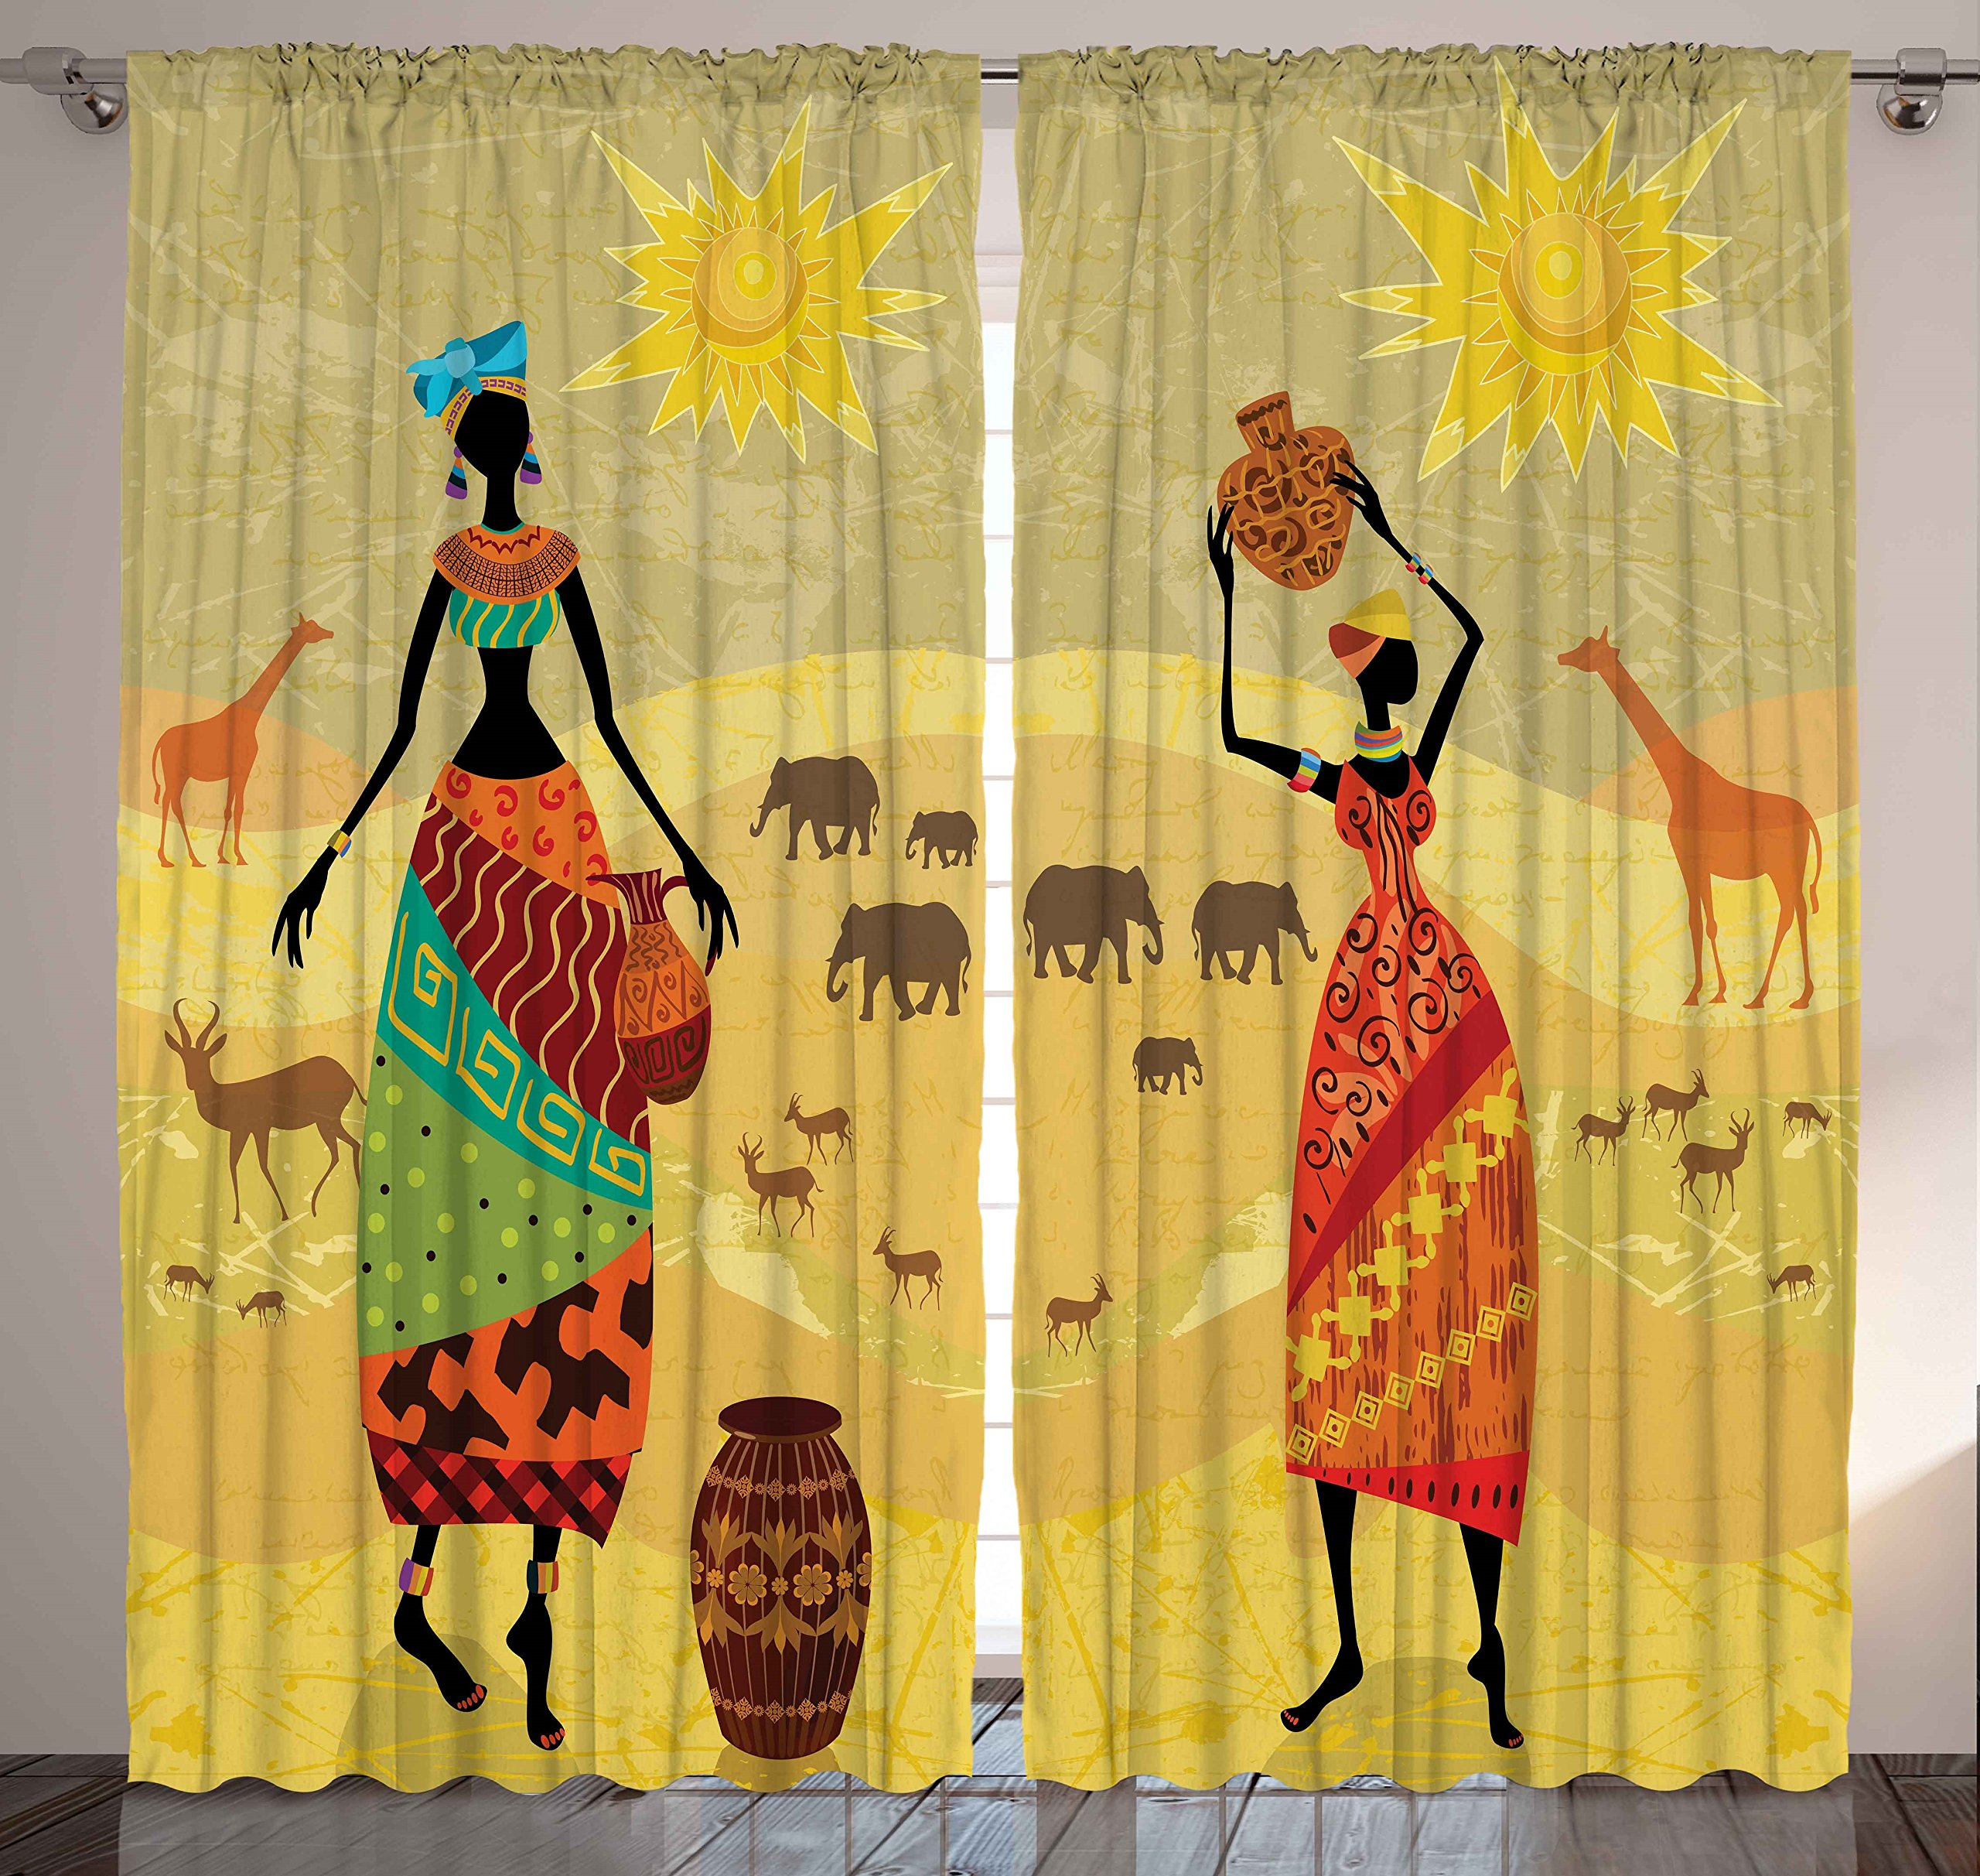 Safari Decor African Tribal Women Wild Animals Giraffe Elephants Deers Antlers Desert Theme Bohemian Artwork for Bedroom Living Room Artsy Curtains 2 Panels Set 108x84 Inches, Gold Yellow Orange by Ambesonne (Image #1)